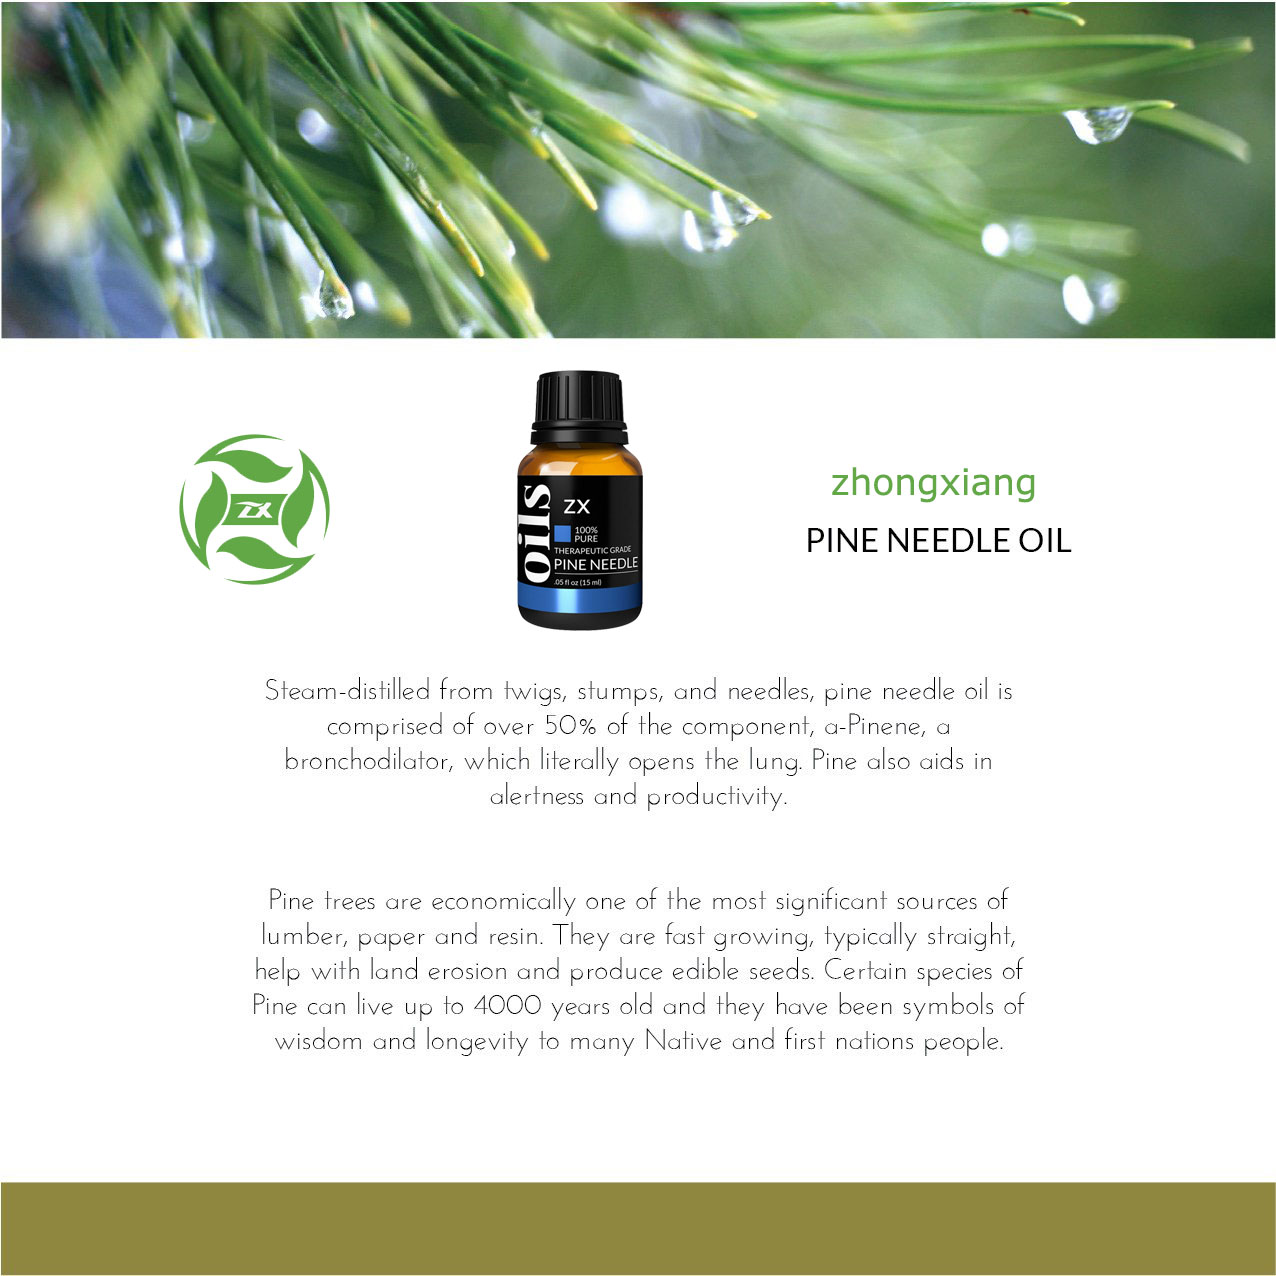 Pine needle oil7